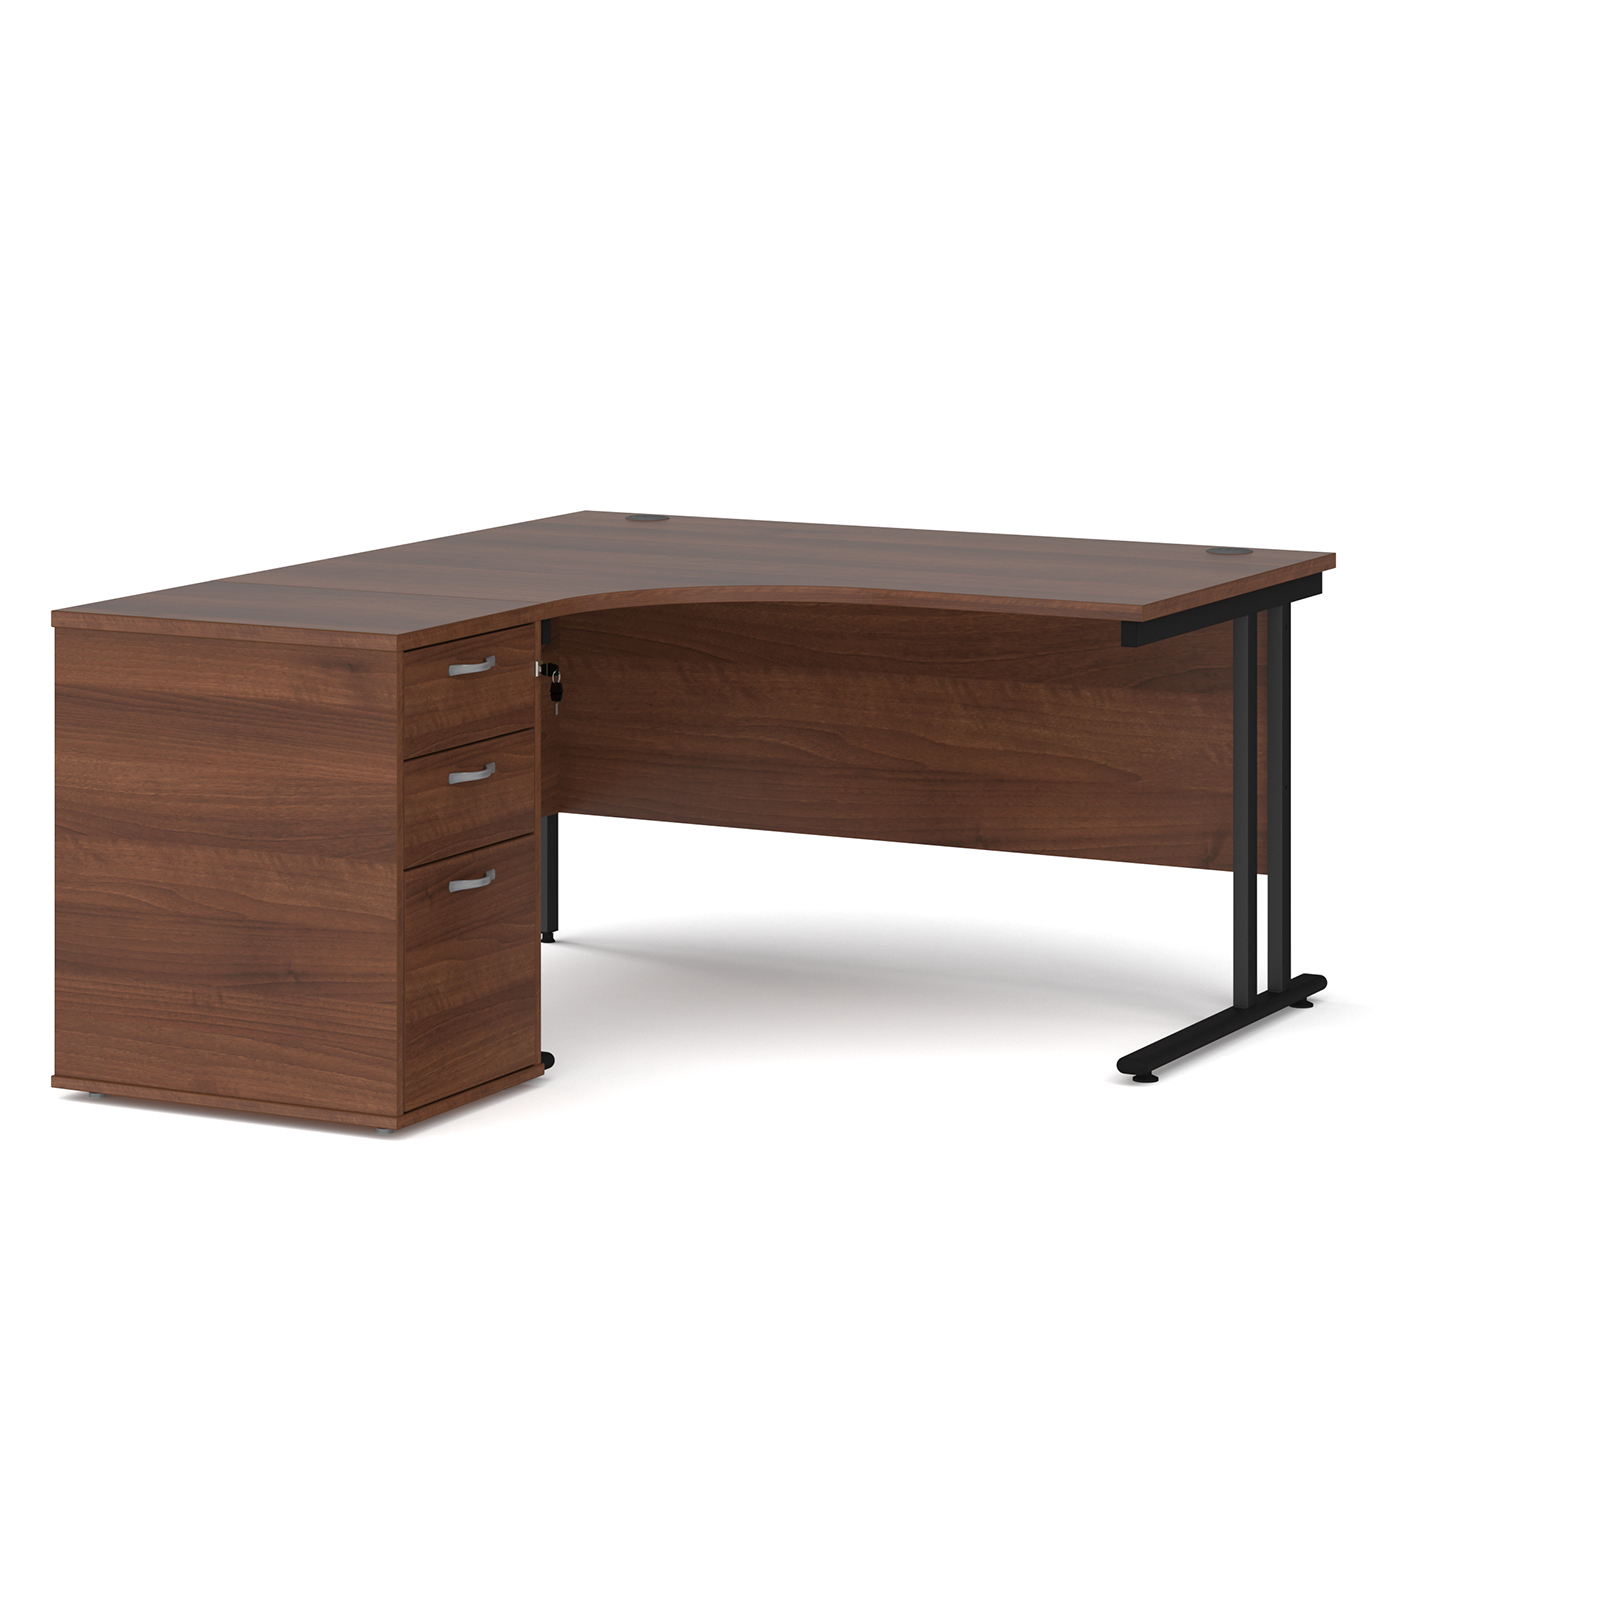 Left Handed Maestro 25 left hand ergonomic desk 1400mm with black cantilever frame and desk high pedestal - walnut